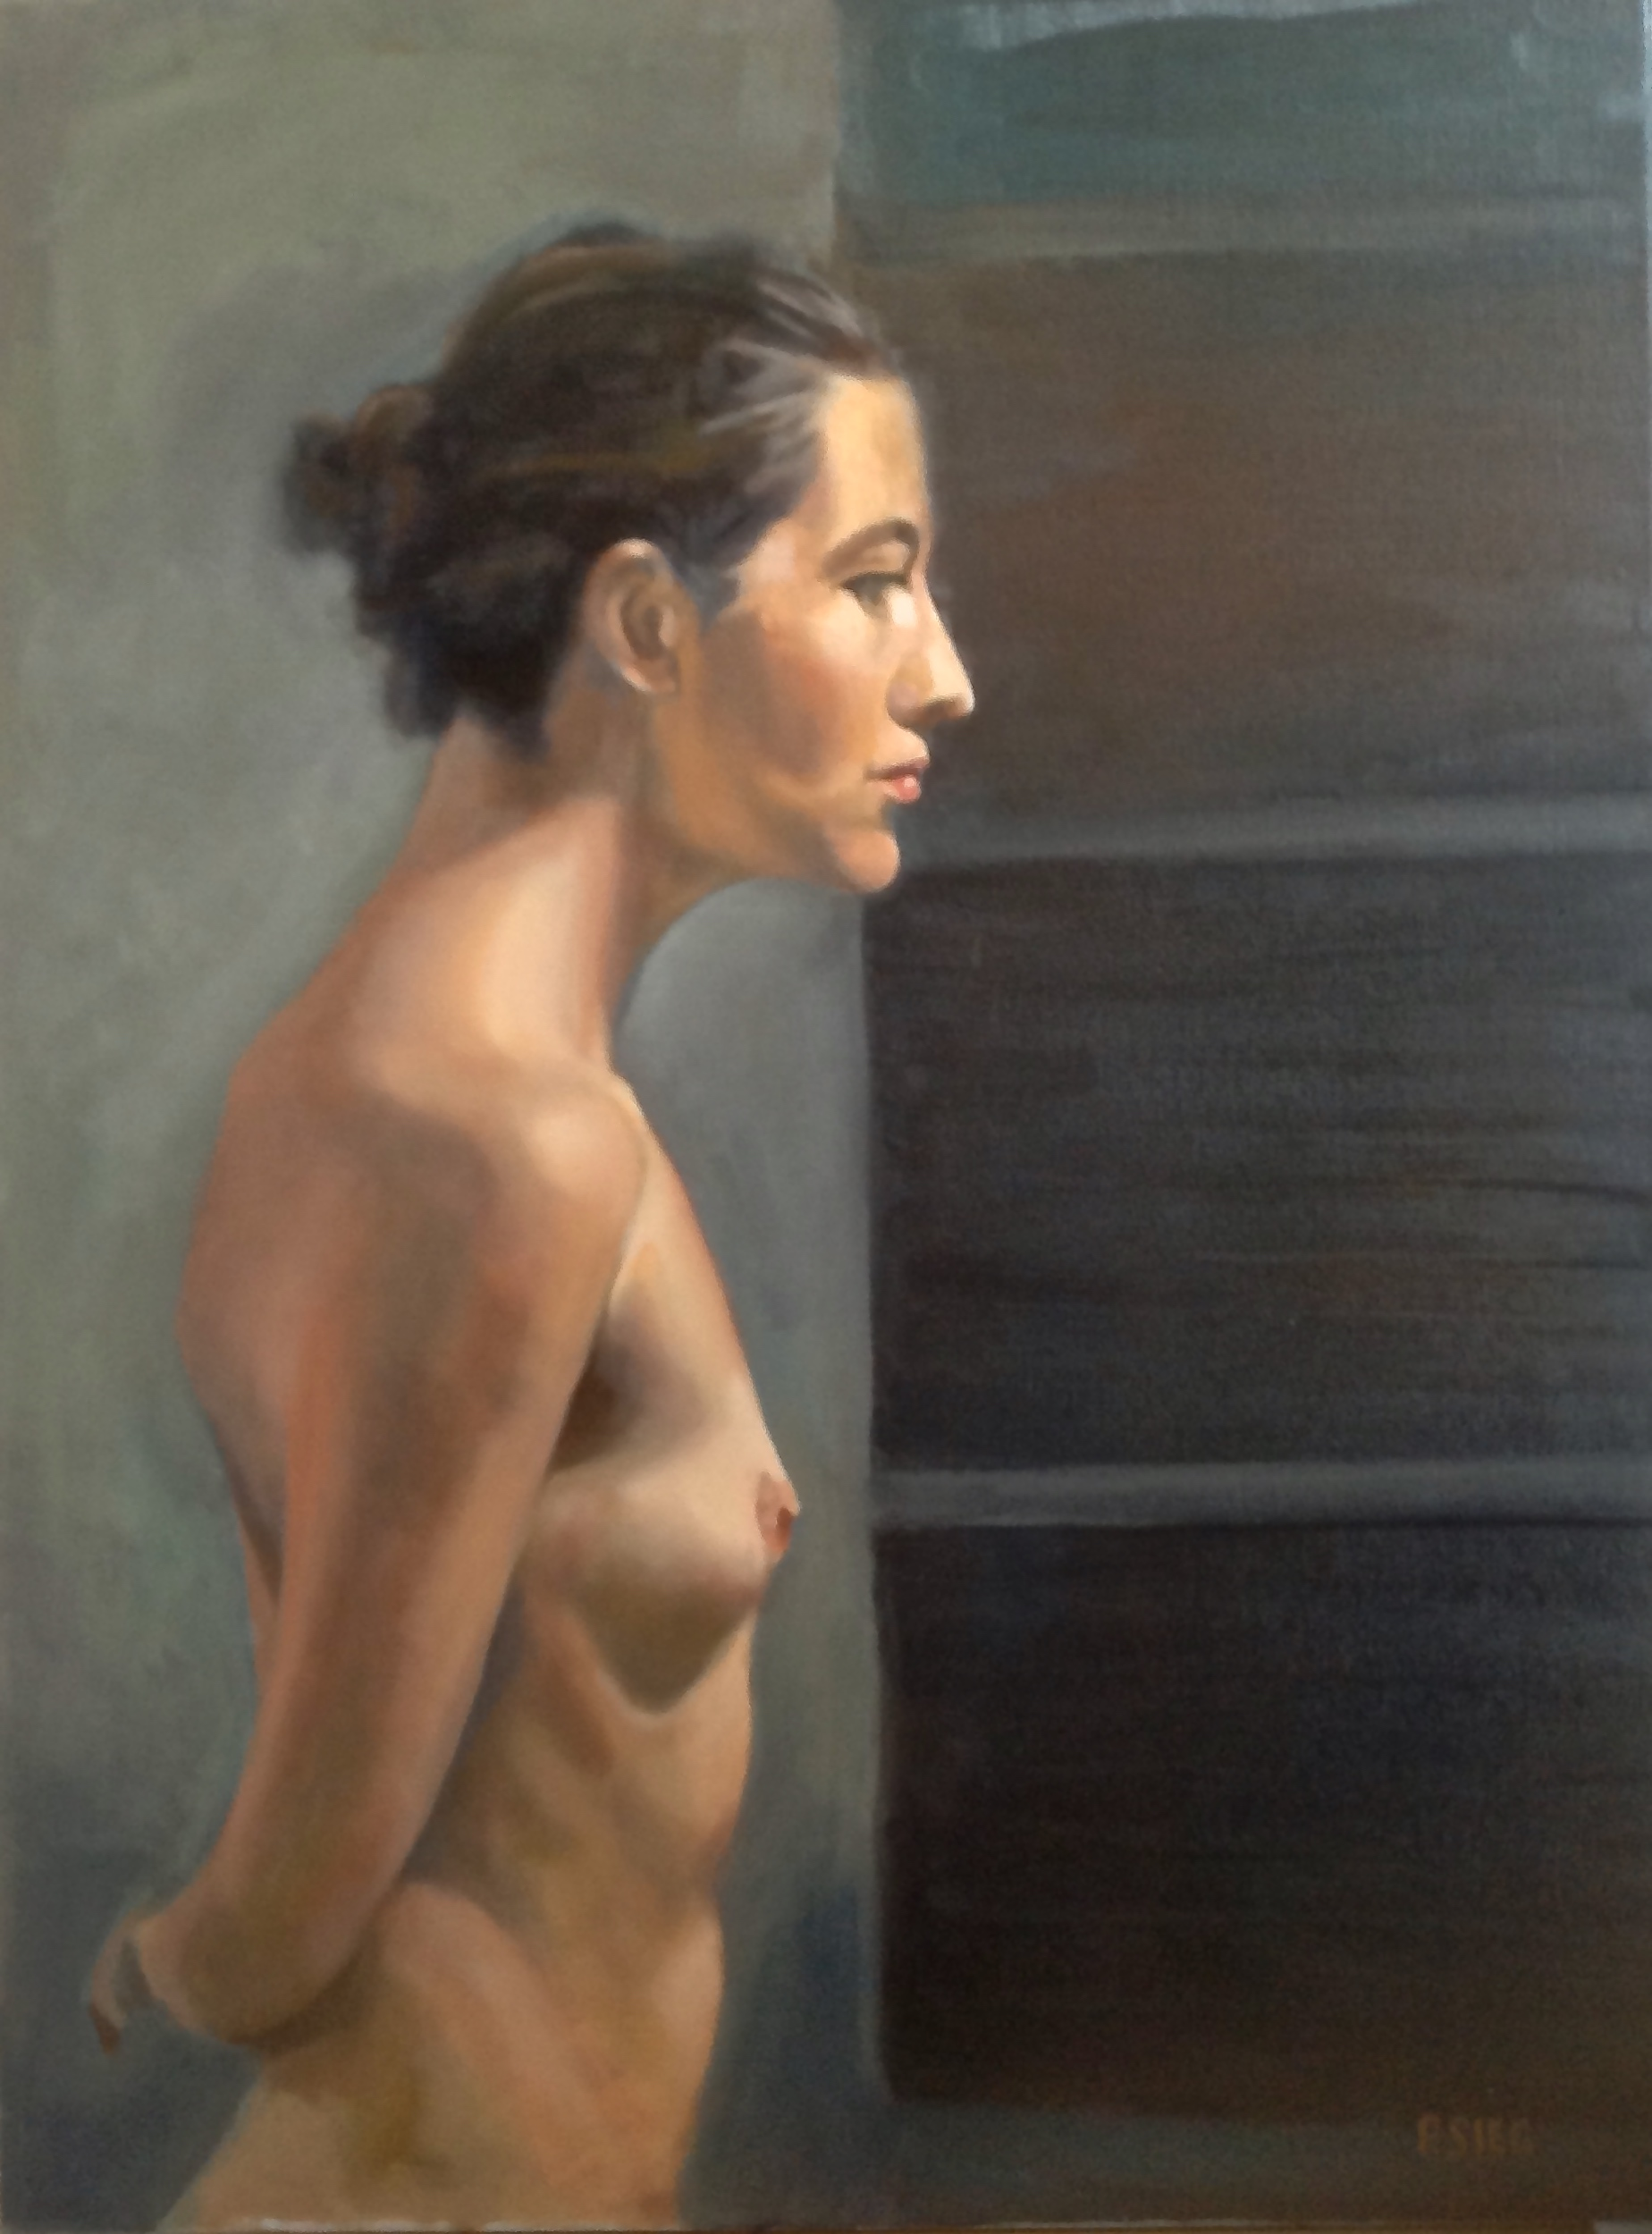 "Leaning In  18"" x 24"", oil on canvas Second prize winner in the Oil and Acrylic category, Rockville Art League, Spring 2015 show. For sale,  contact the artist"